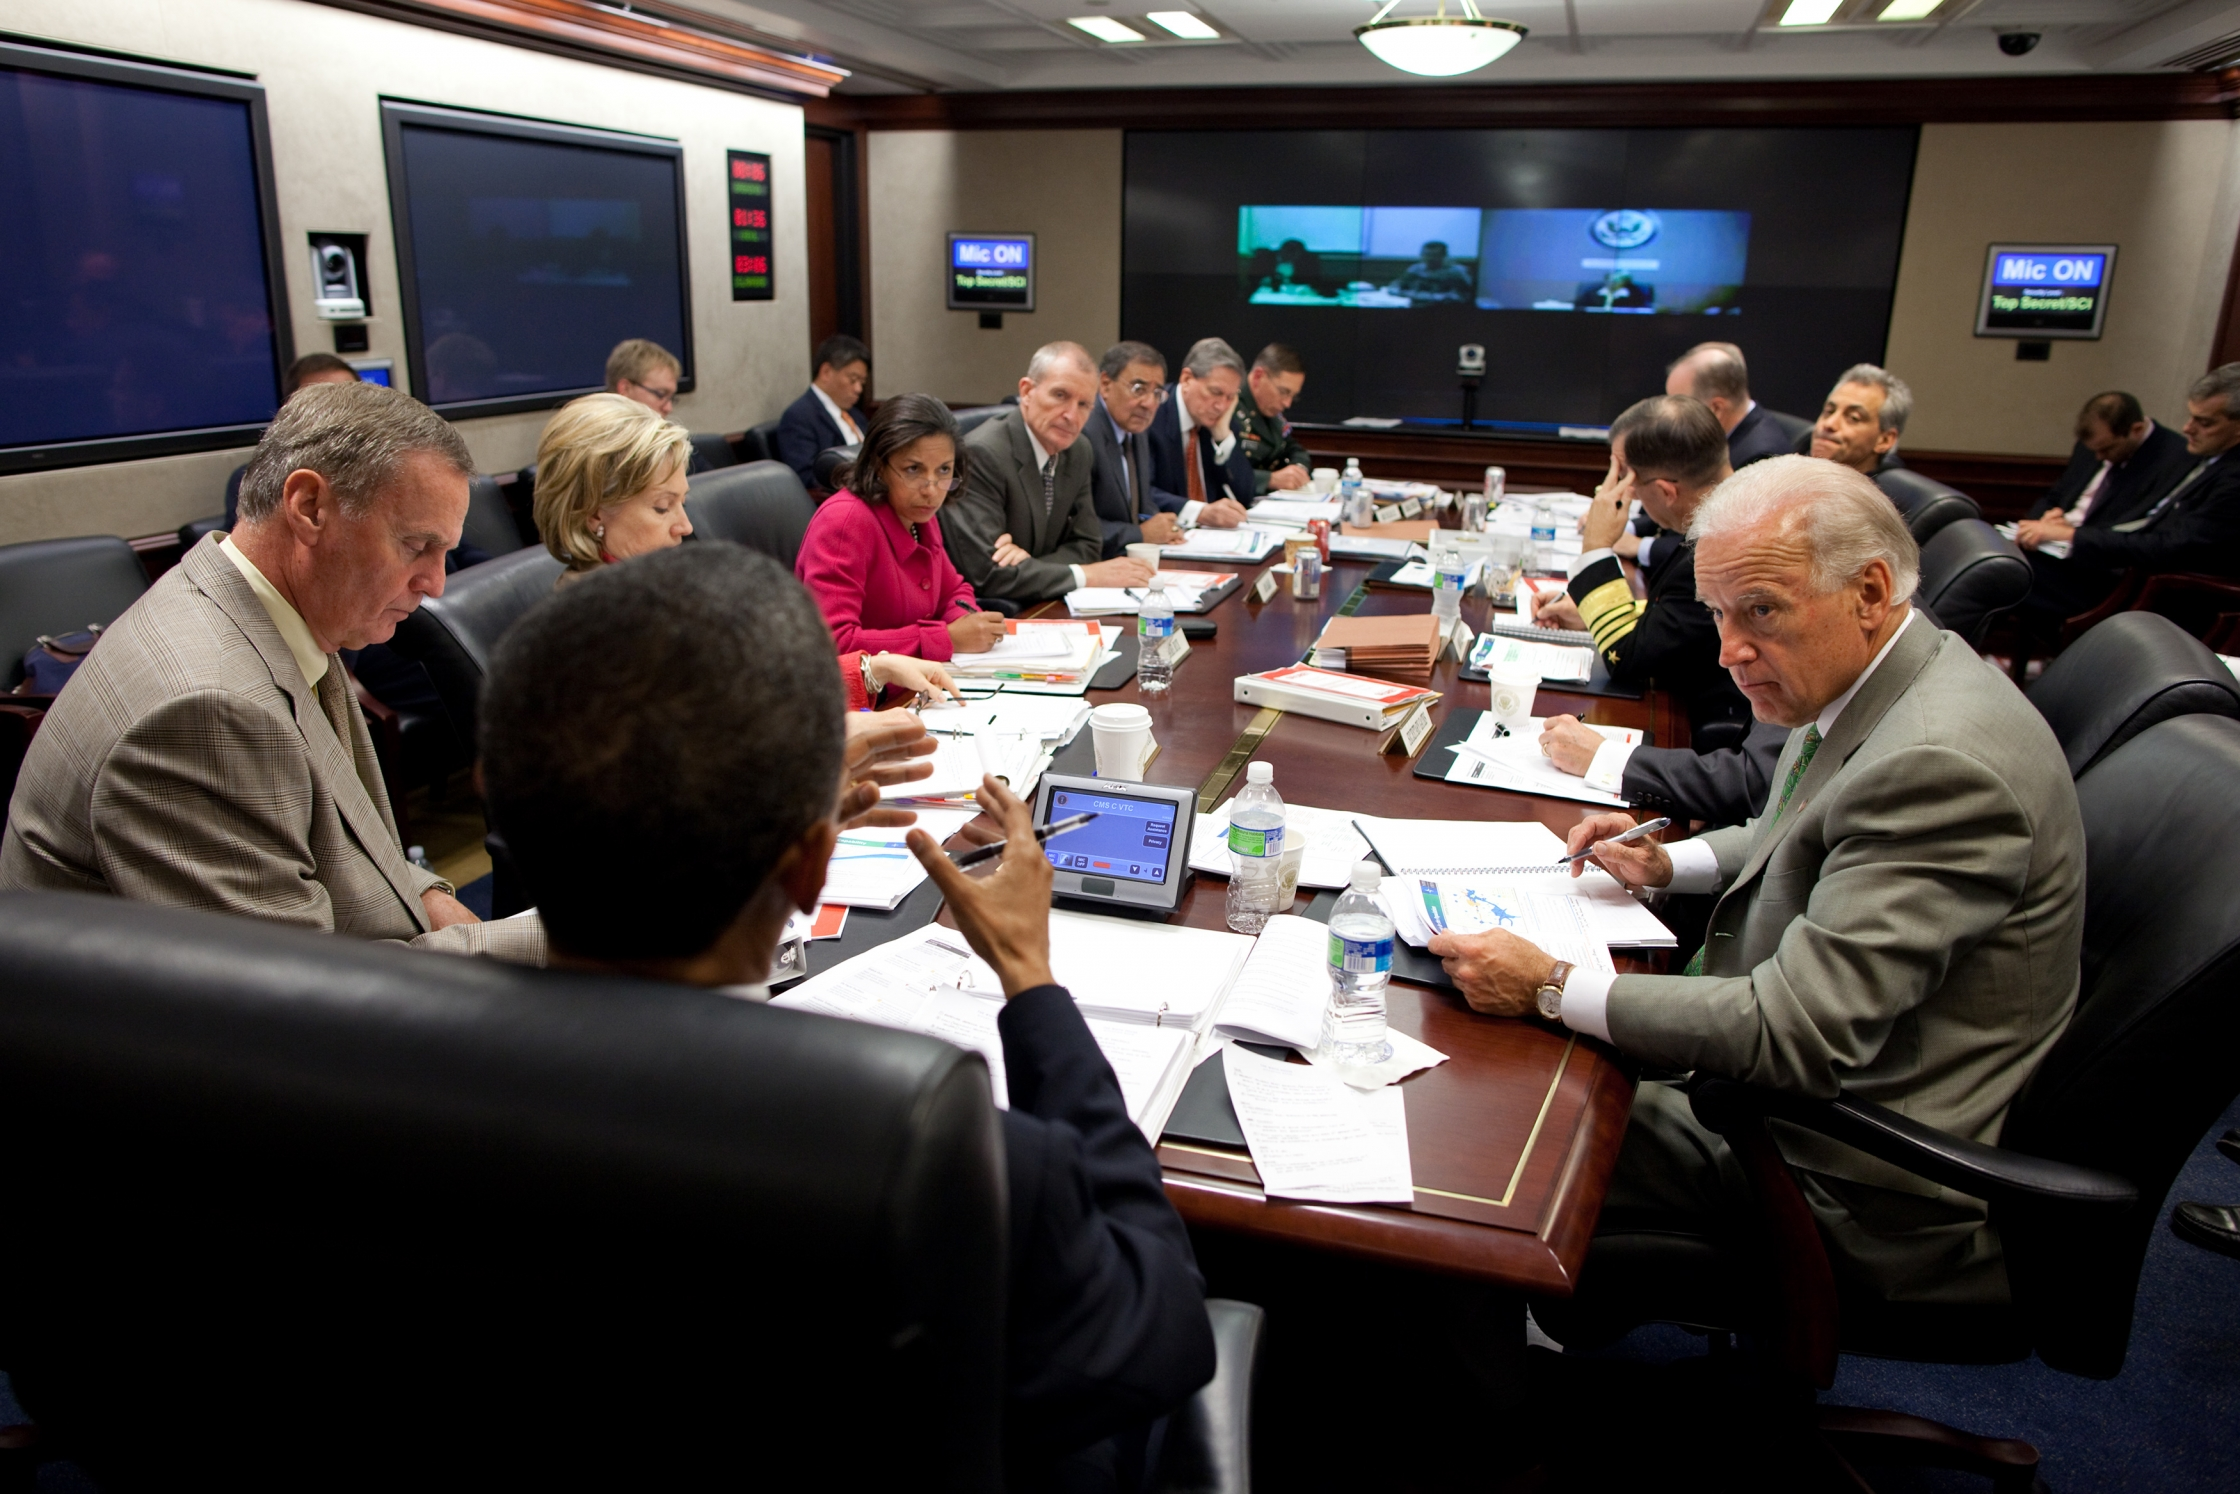 President Barack Obama attends a briefing on Afghanistan in the Situation Room of the White House, Oct. 9, 2009. (Official White House Photo by Pete Souza)